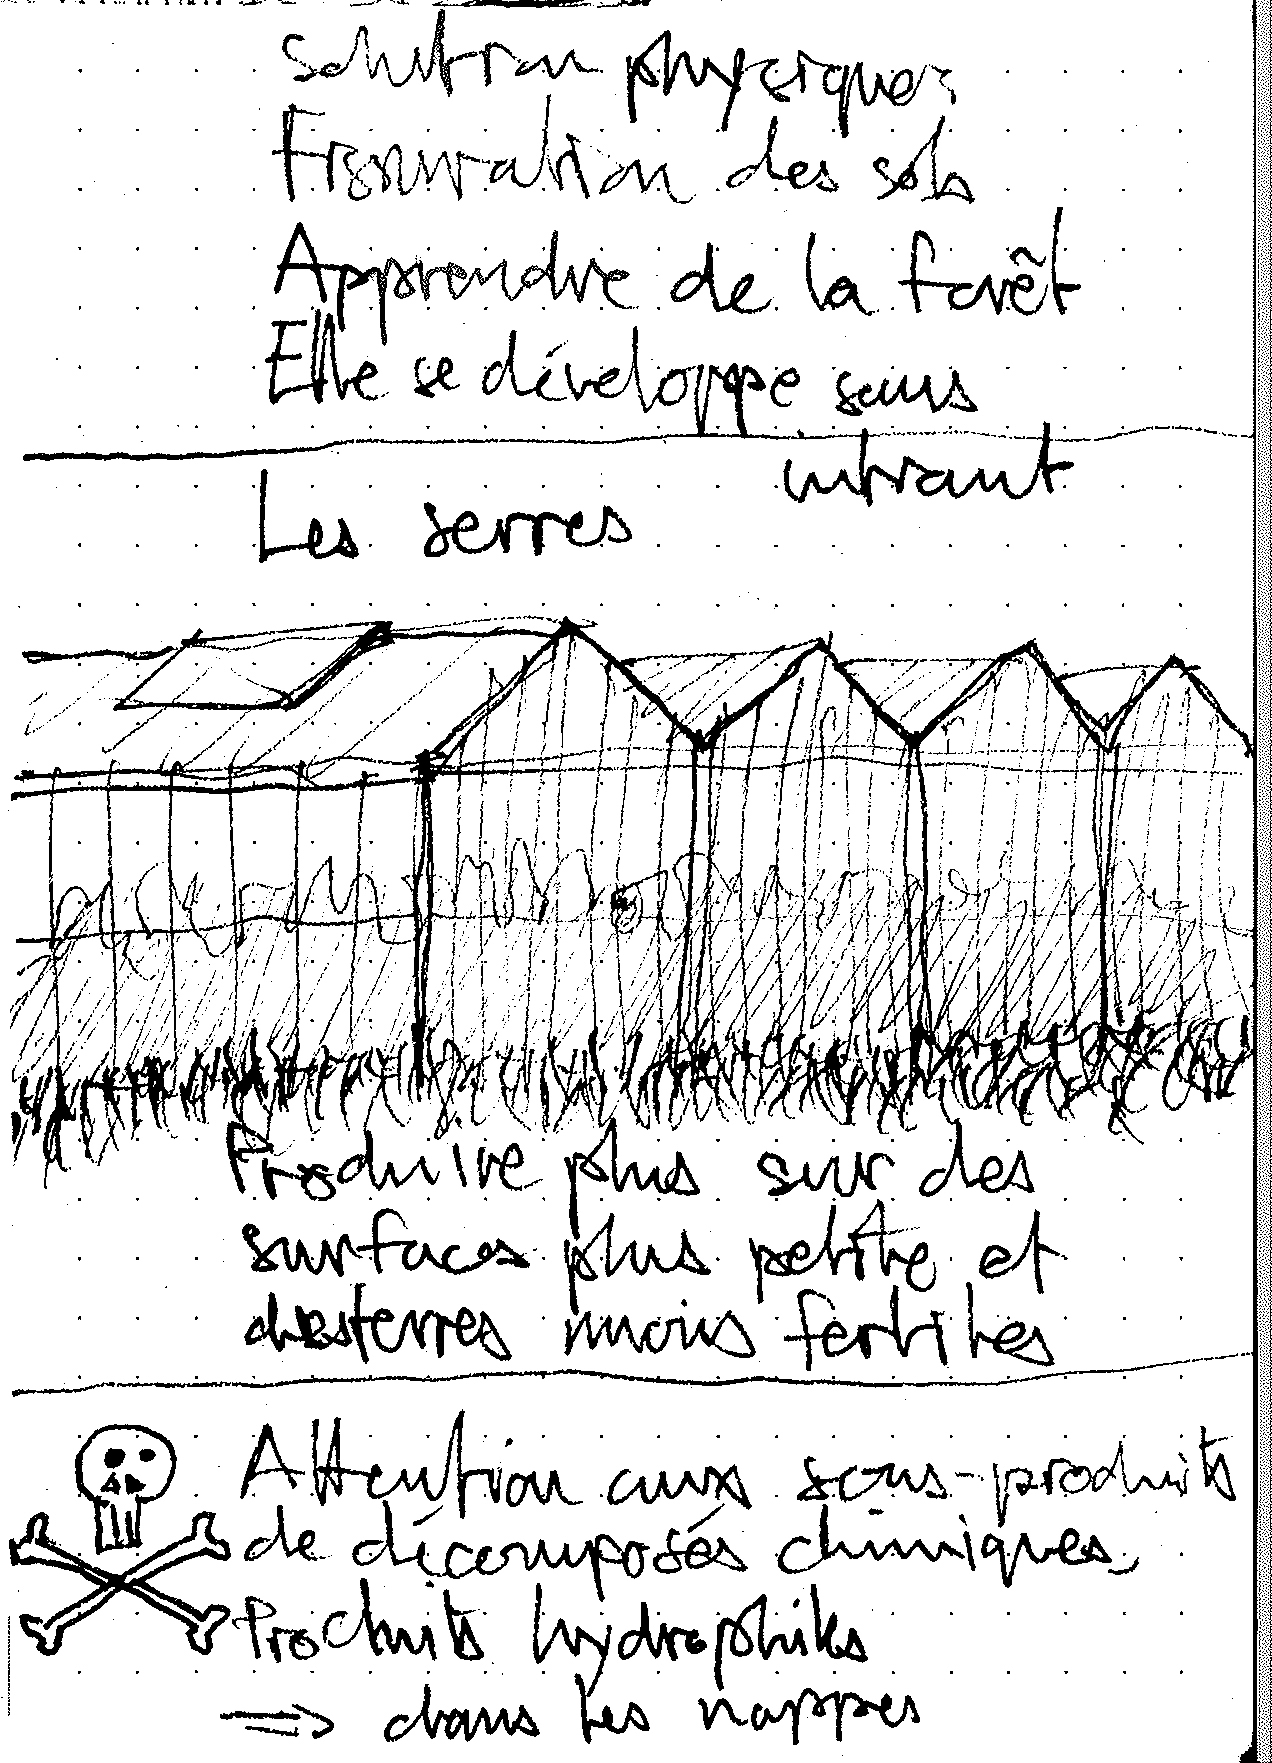 Notes de Nicolas Monnerat